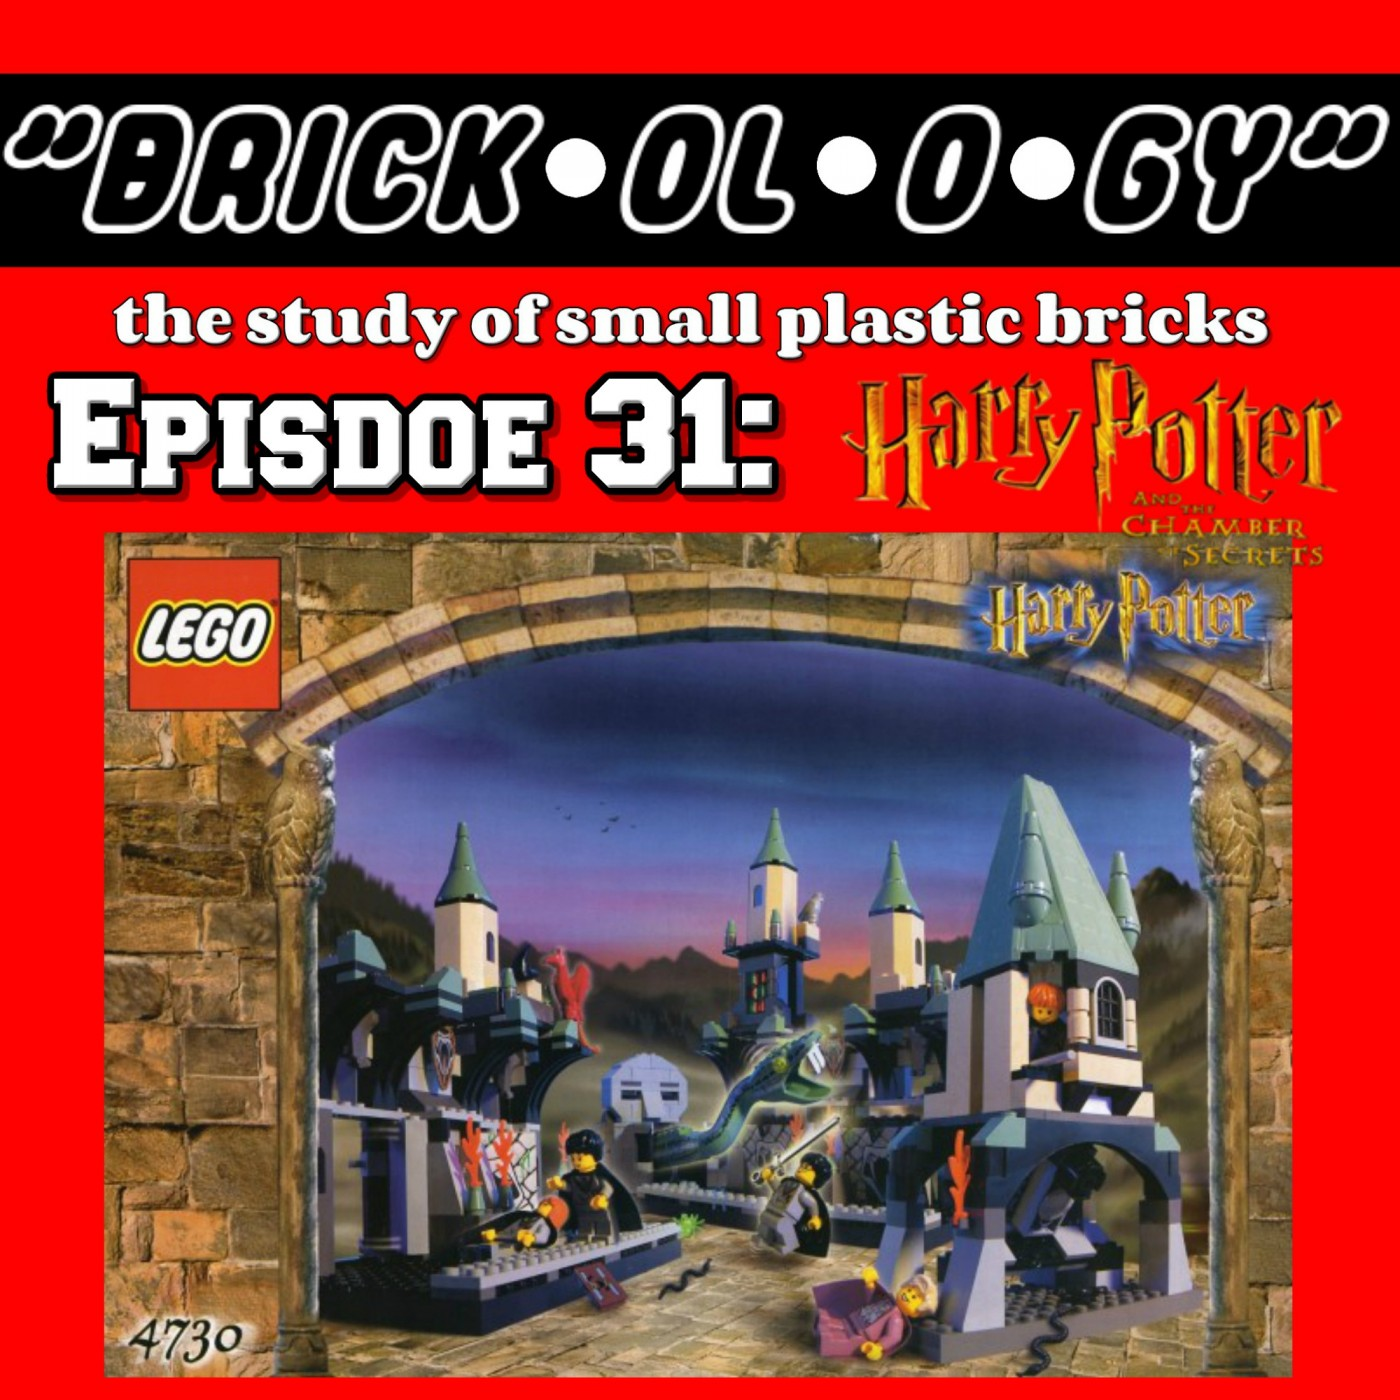 Brickology Episode 31 - LEGO Harry Potter and the Chamber of Secrets